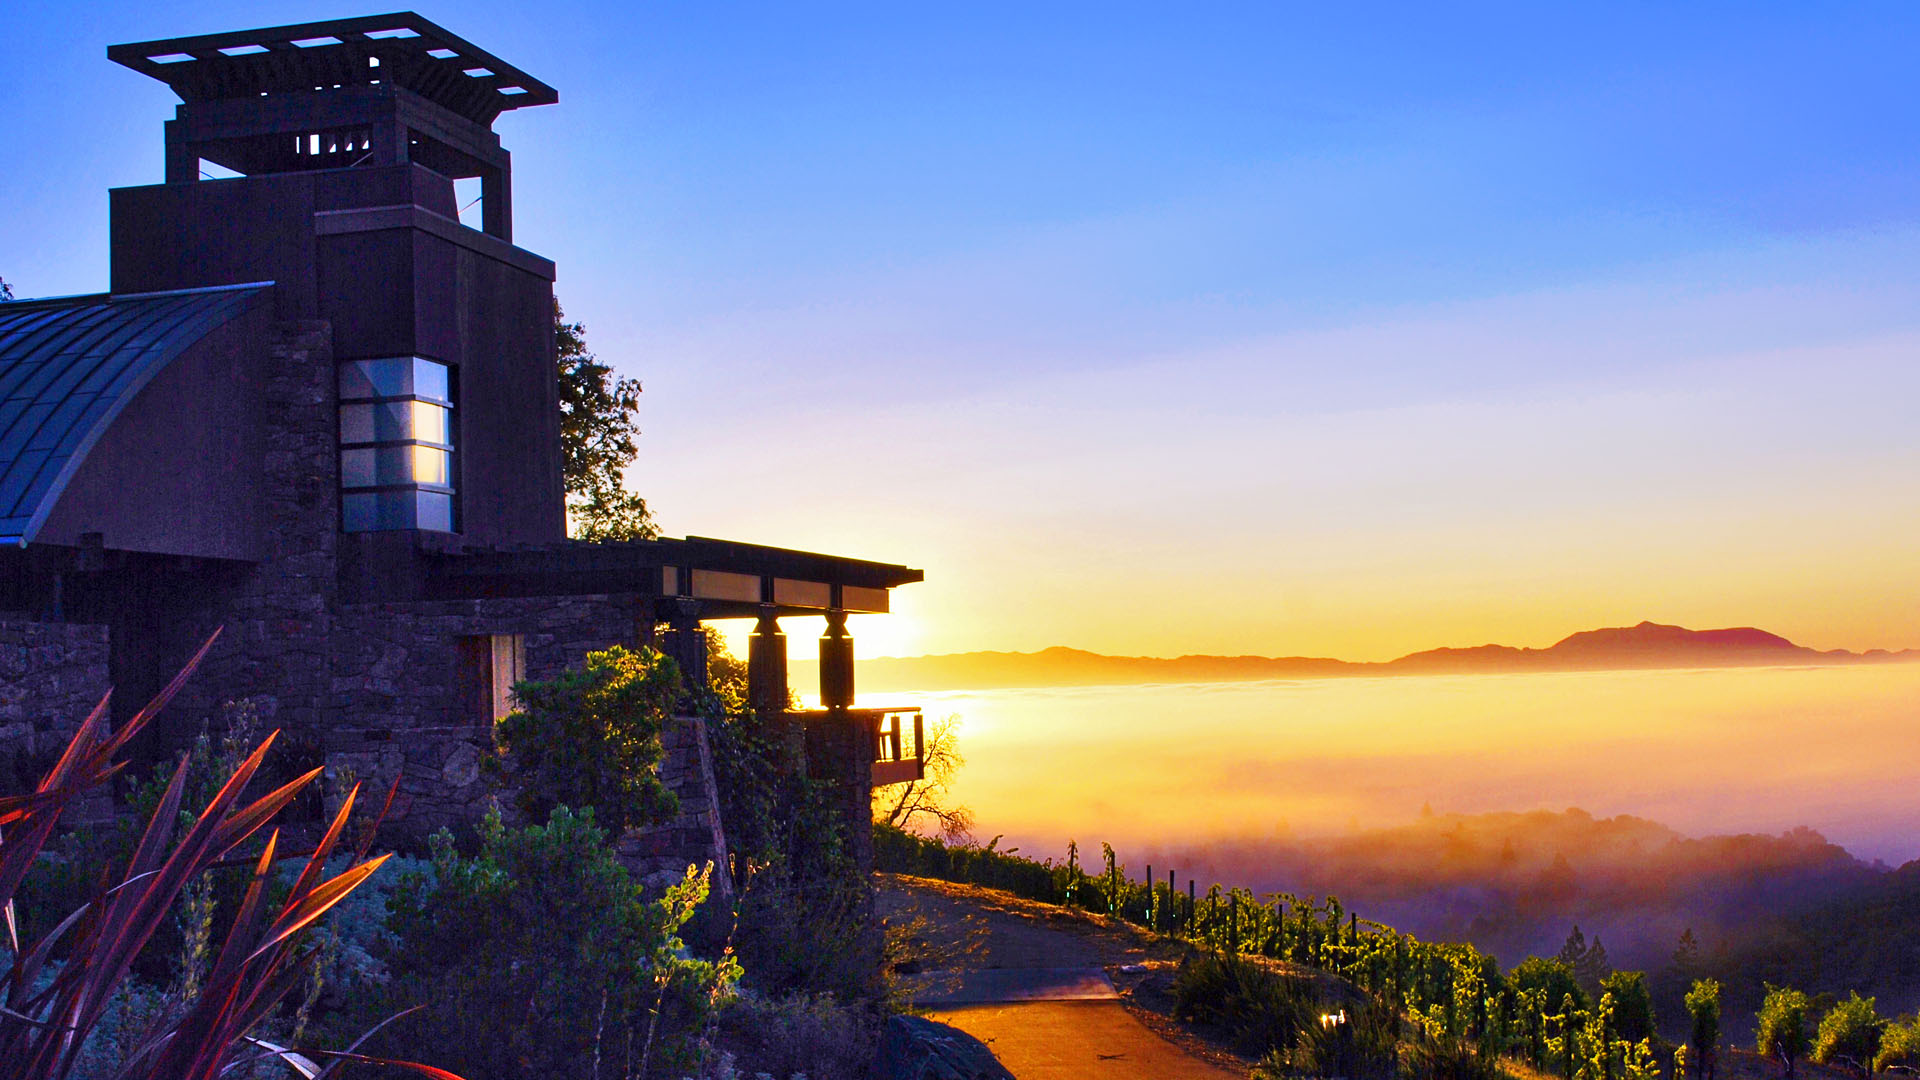 Arteriors Architects Sonoma California Mountaintop House Valley Sunrise